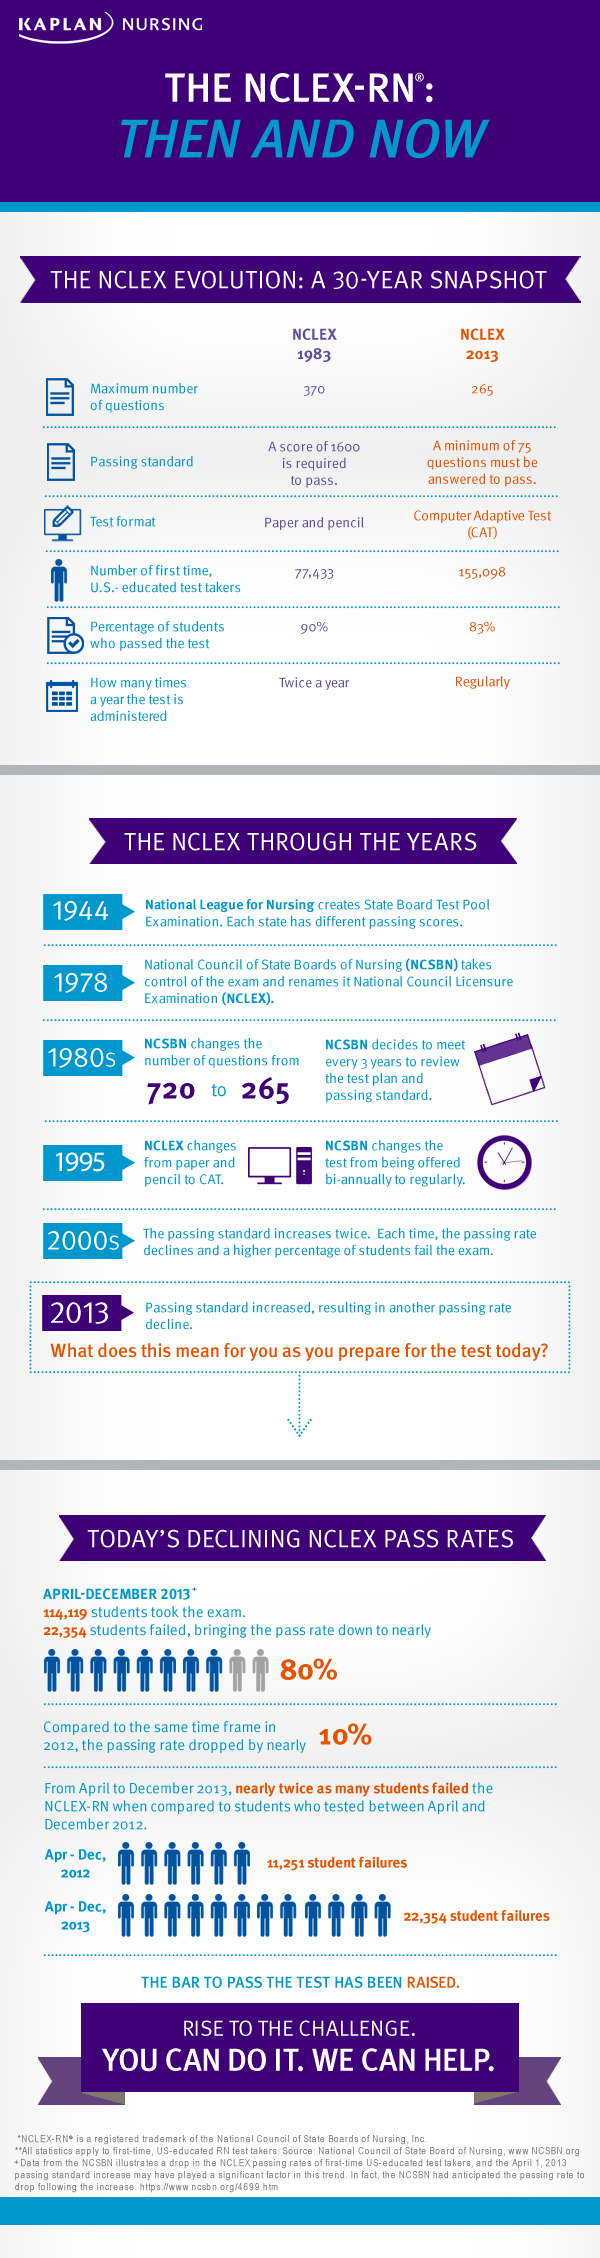 Dig deeper into how the NCLEX has changed. Click to enlarge.